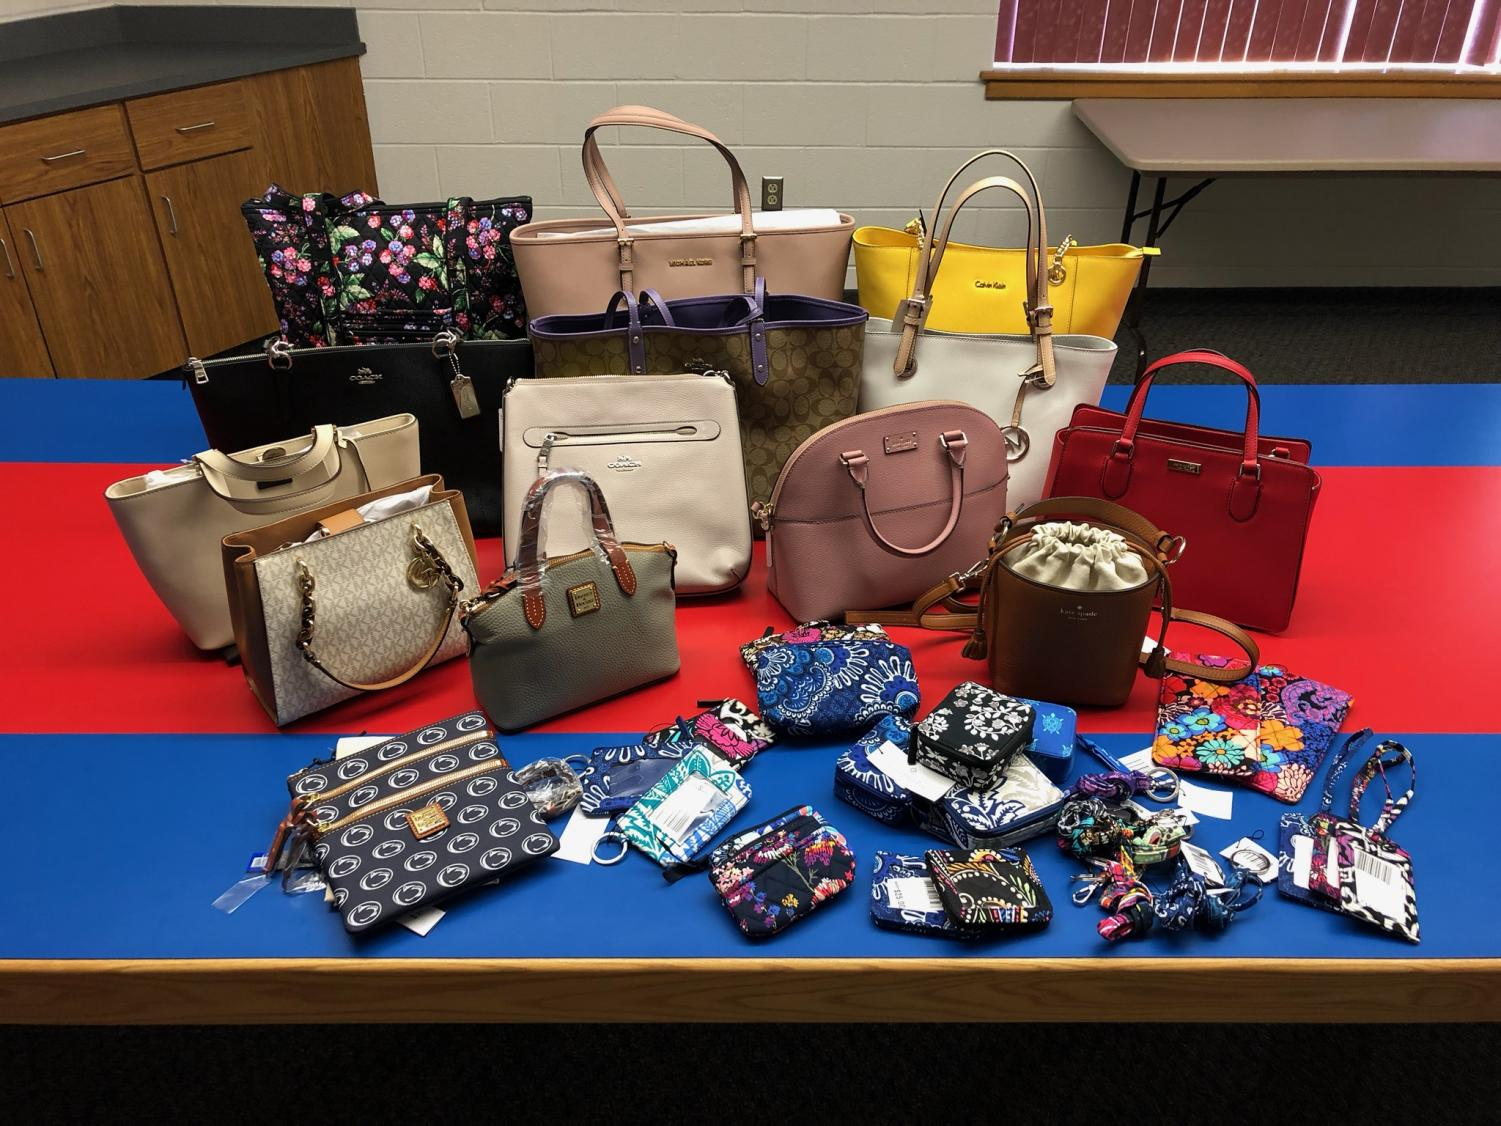 Display of bags generously donated by the community.